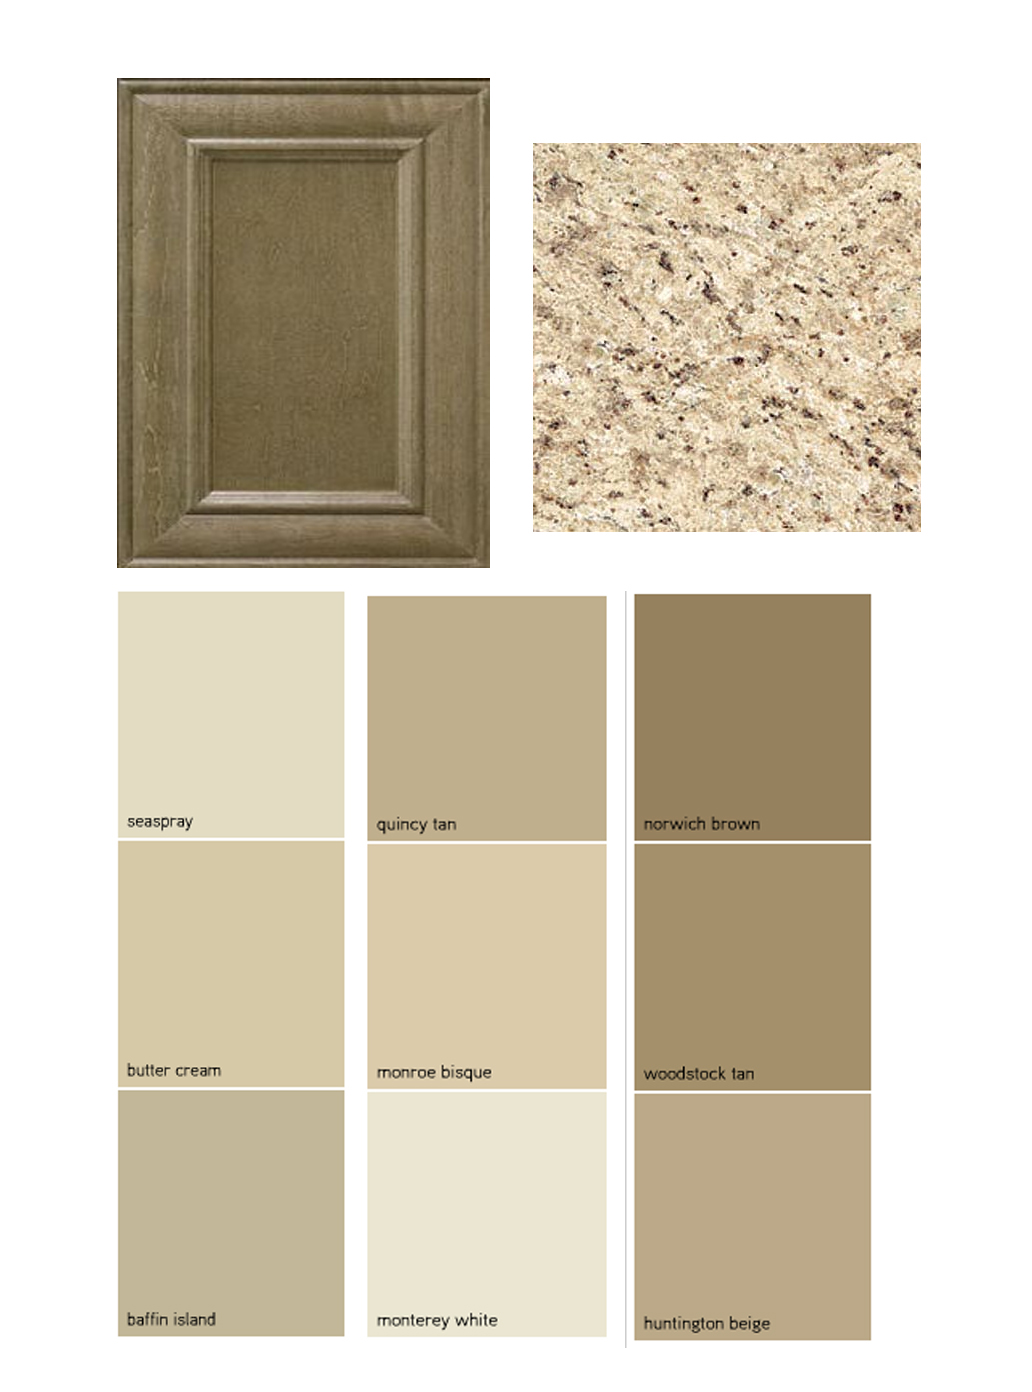 White duck paint color sw 7010 by sherwin williams view for Best benjamin moore paint color for kitchen cabinets